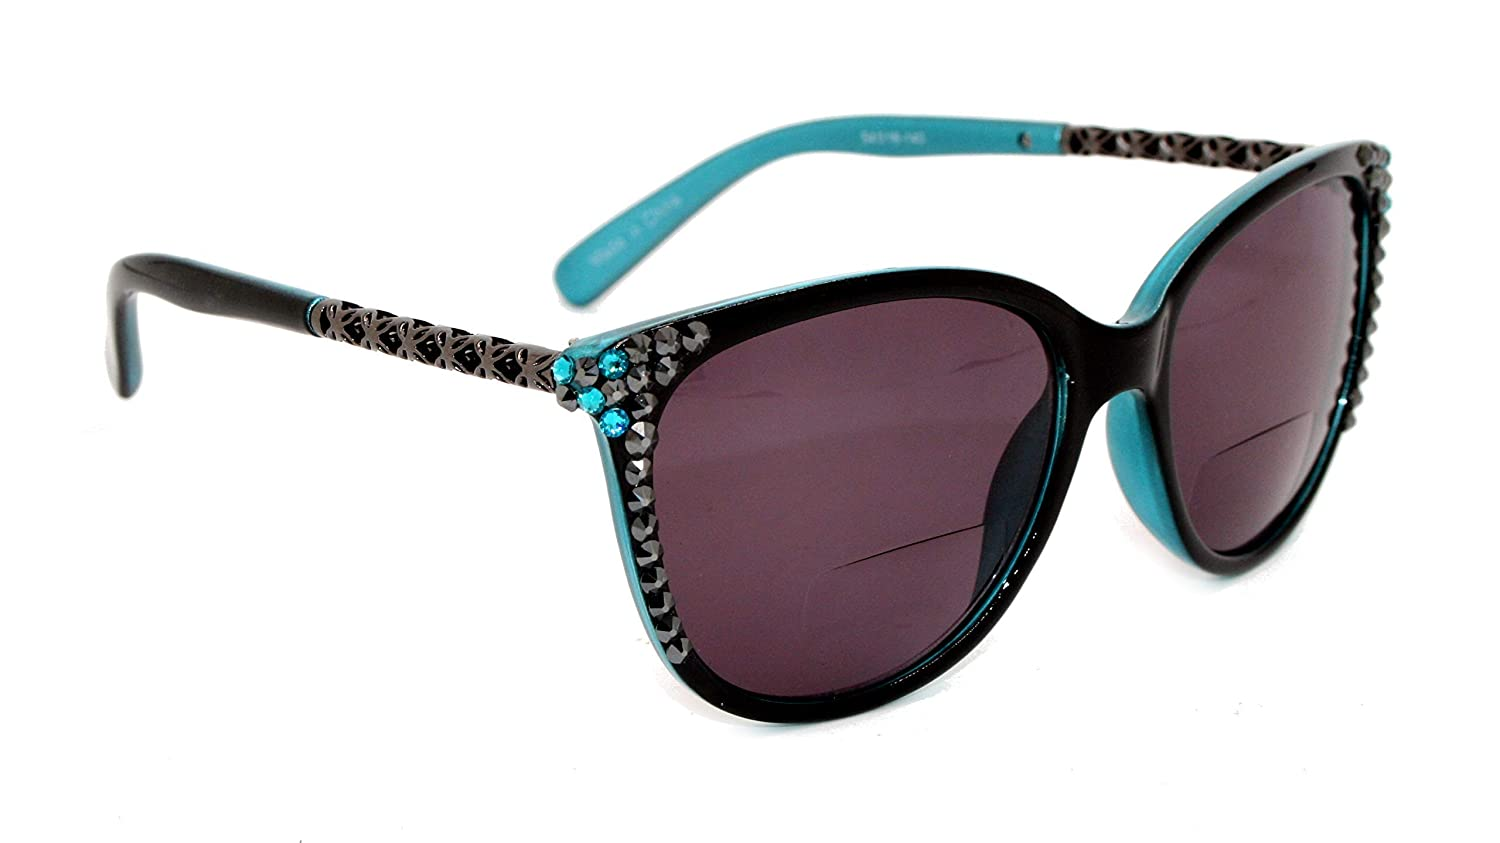 Santa Monica Bifocal All stores are sold Sunglasses Sun Bling Readers Women with H All items free shipping